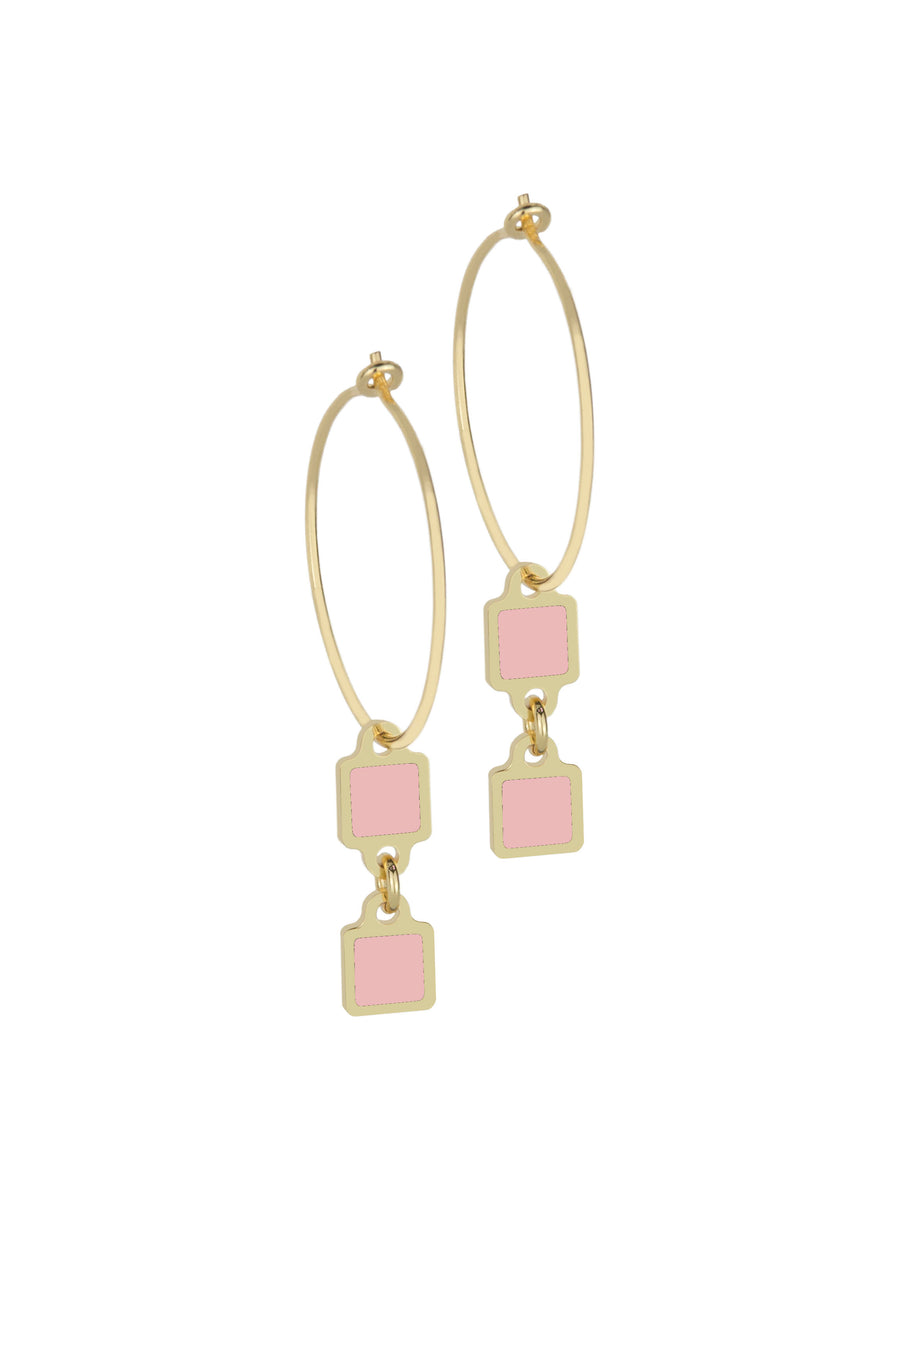 Francesca Bianchi -  Square Pendant Hoop Earrings - Pink